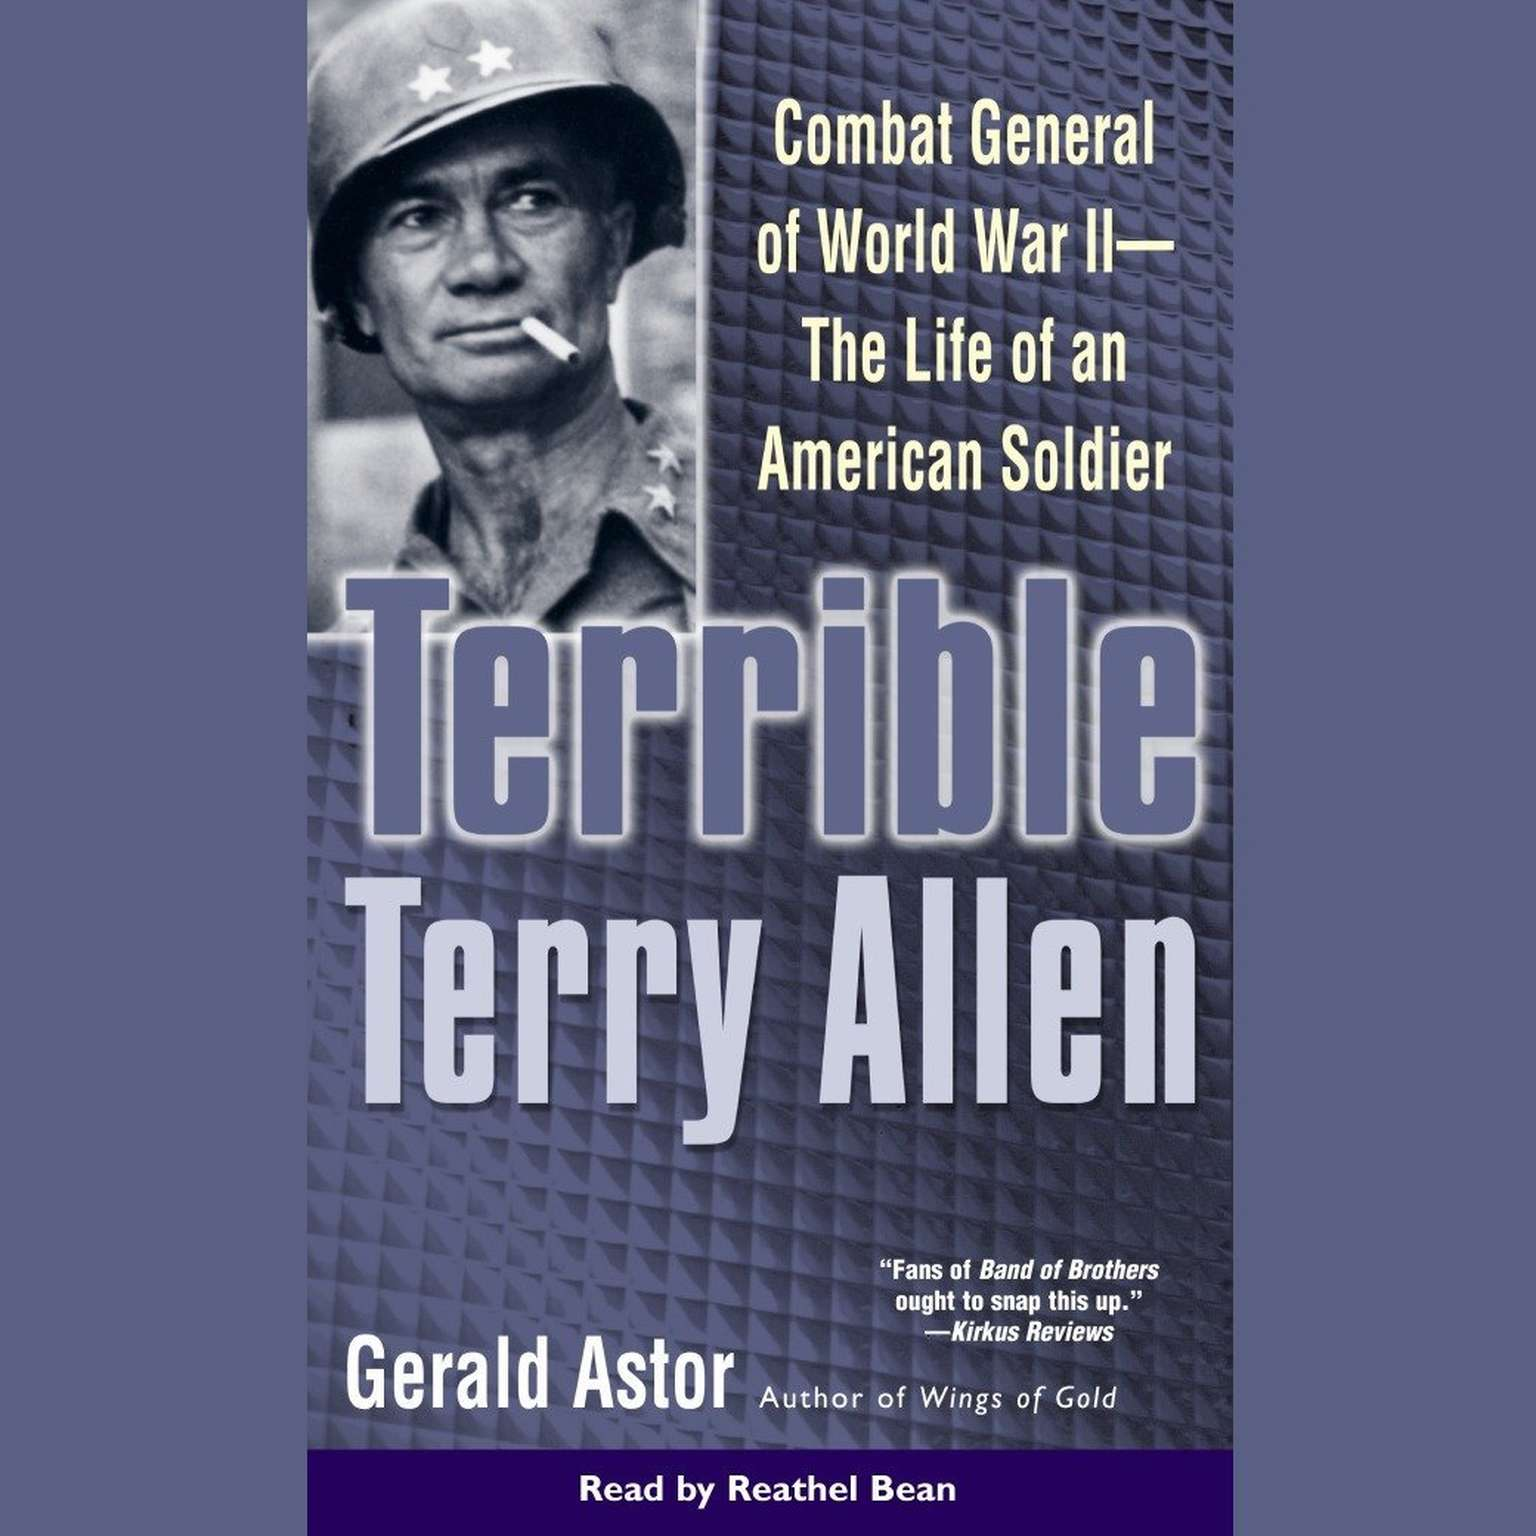 Printable Terrible Terry Allen: Combat General of WWII - The Life of an American Soldier Audiobook Cover Art